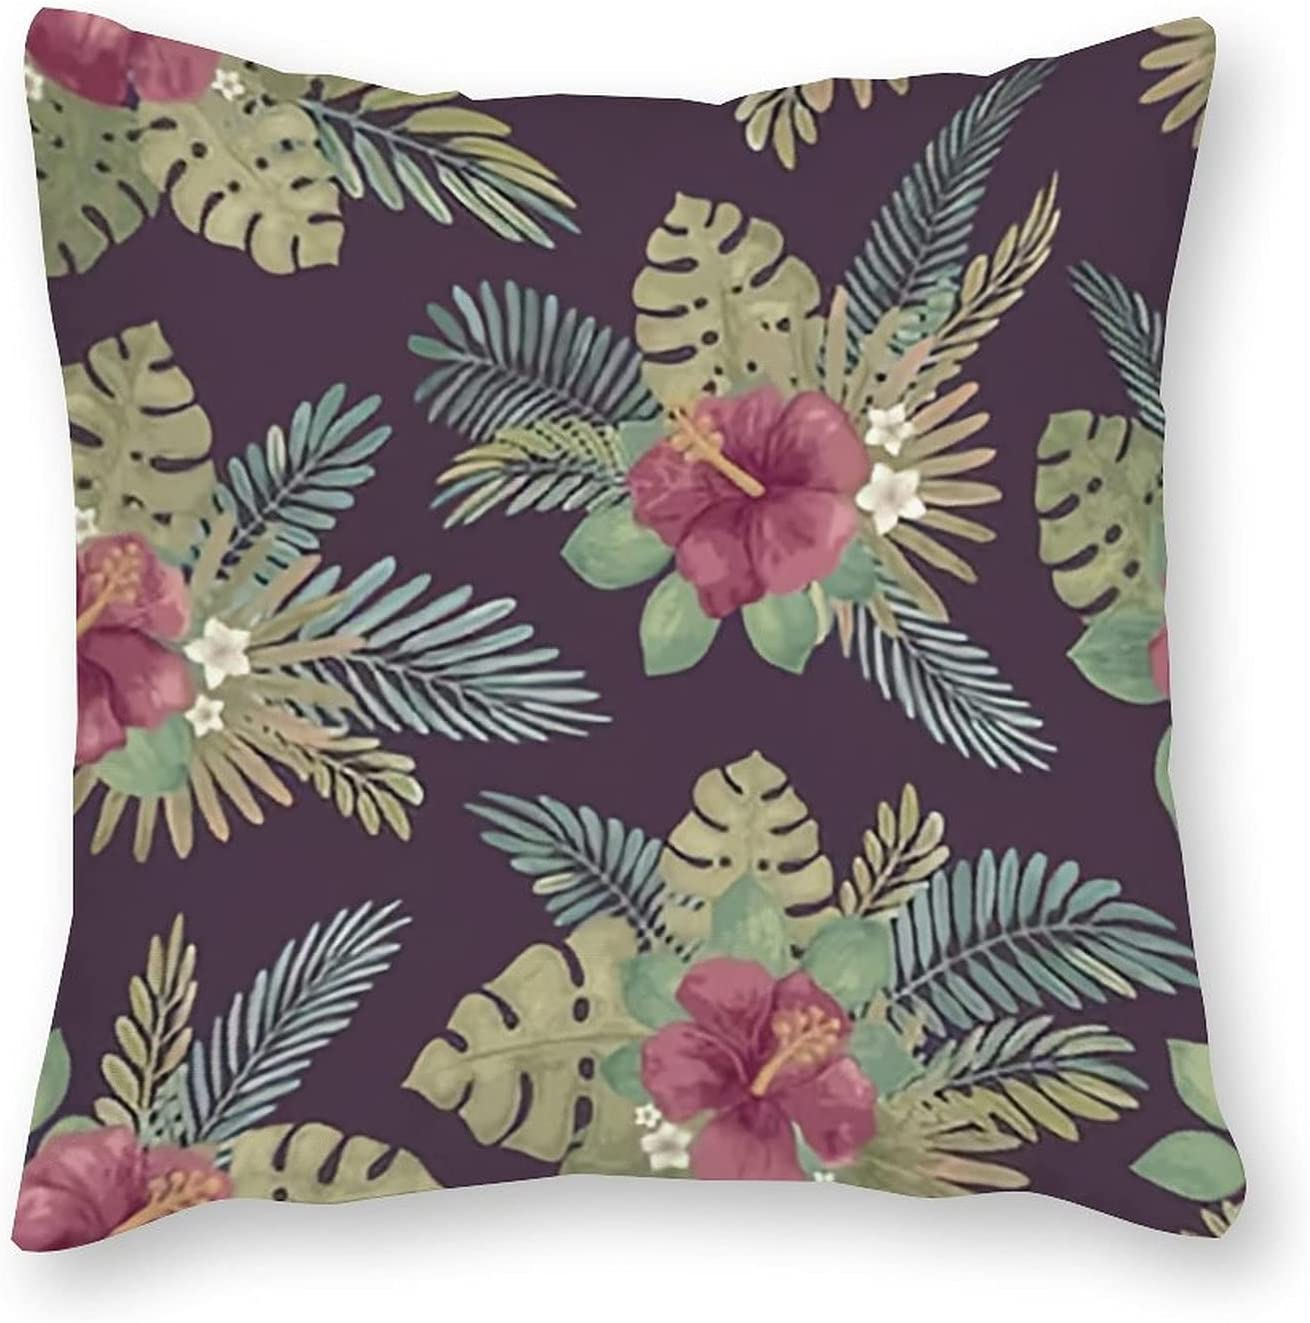 UTF4C Tropical Max 62% OFF Summer Max 63% OFF Seamless Pattern - Pillow Throw Monstera C